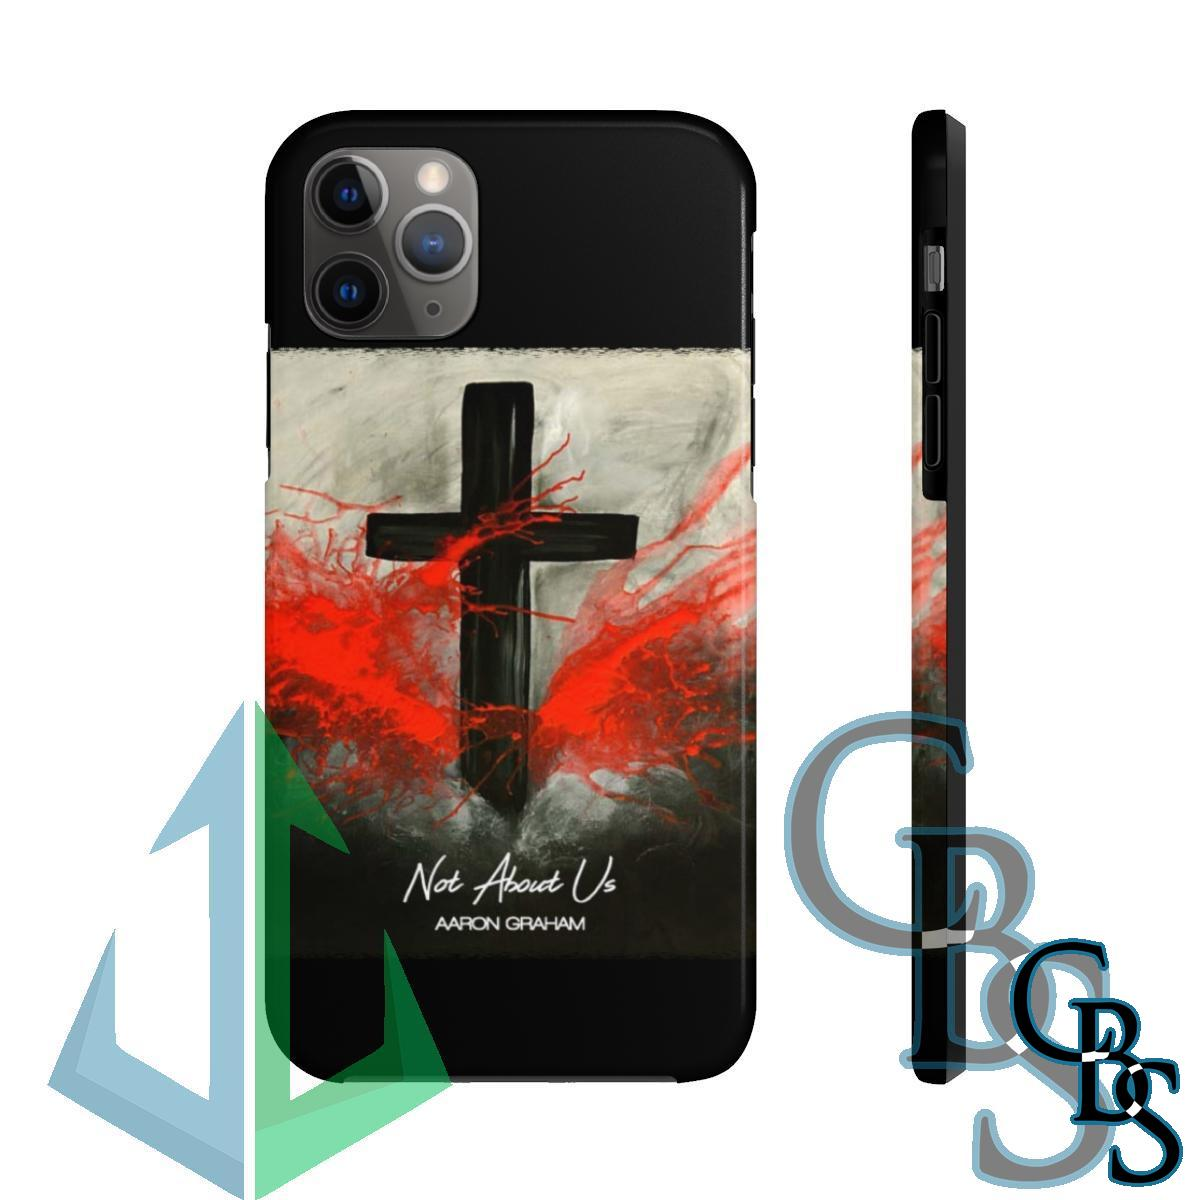 Aaron Graham – Not About Us Tough iPhone Cases (iPhone 7/7 Plus, iPhone 8/8 Plus, iPhone X, XS, XR, iPhone 11, 11 Pro, 11 Pro Max)